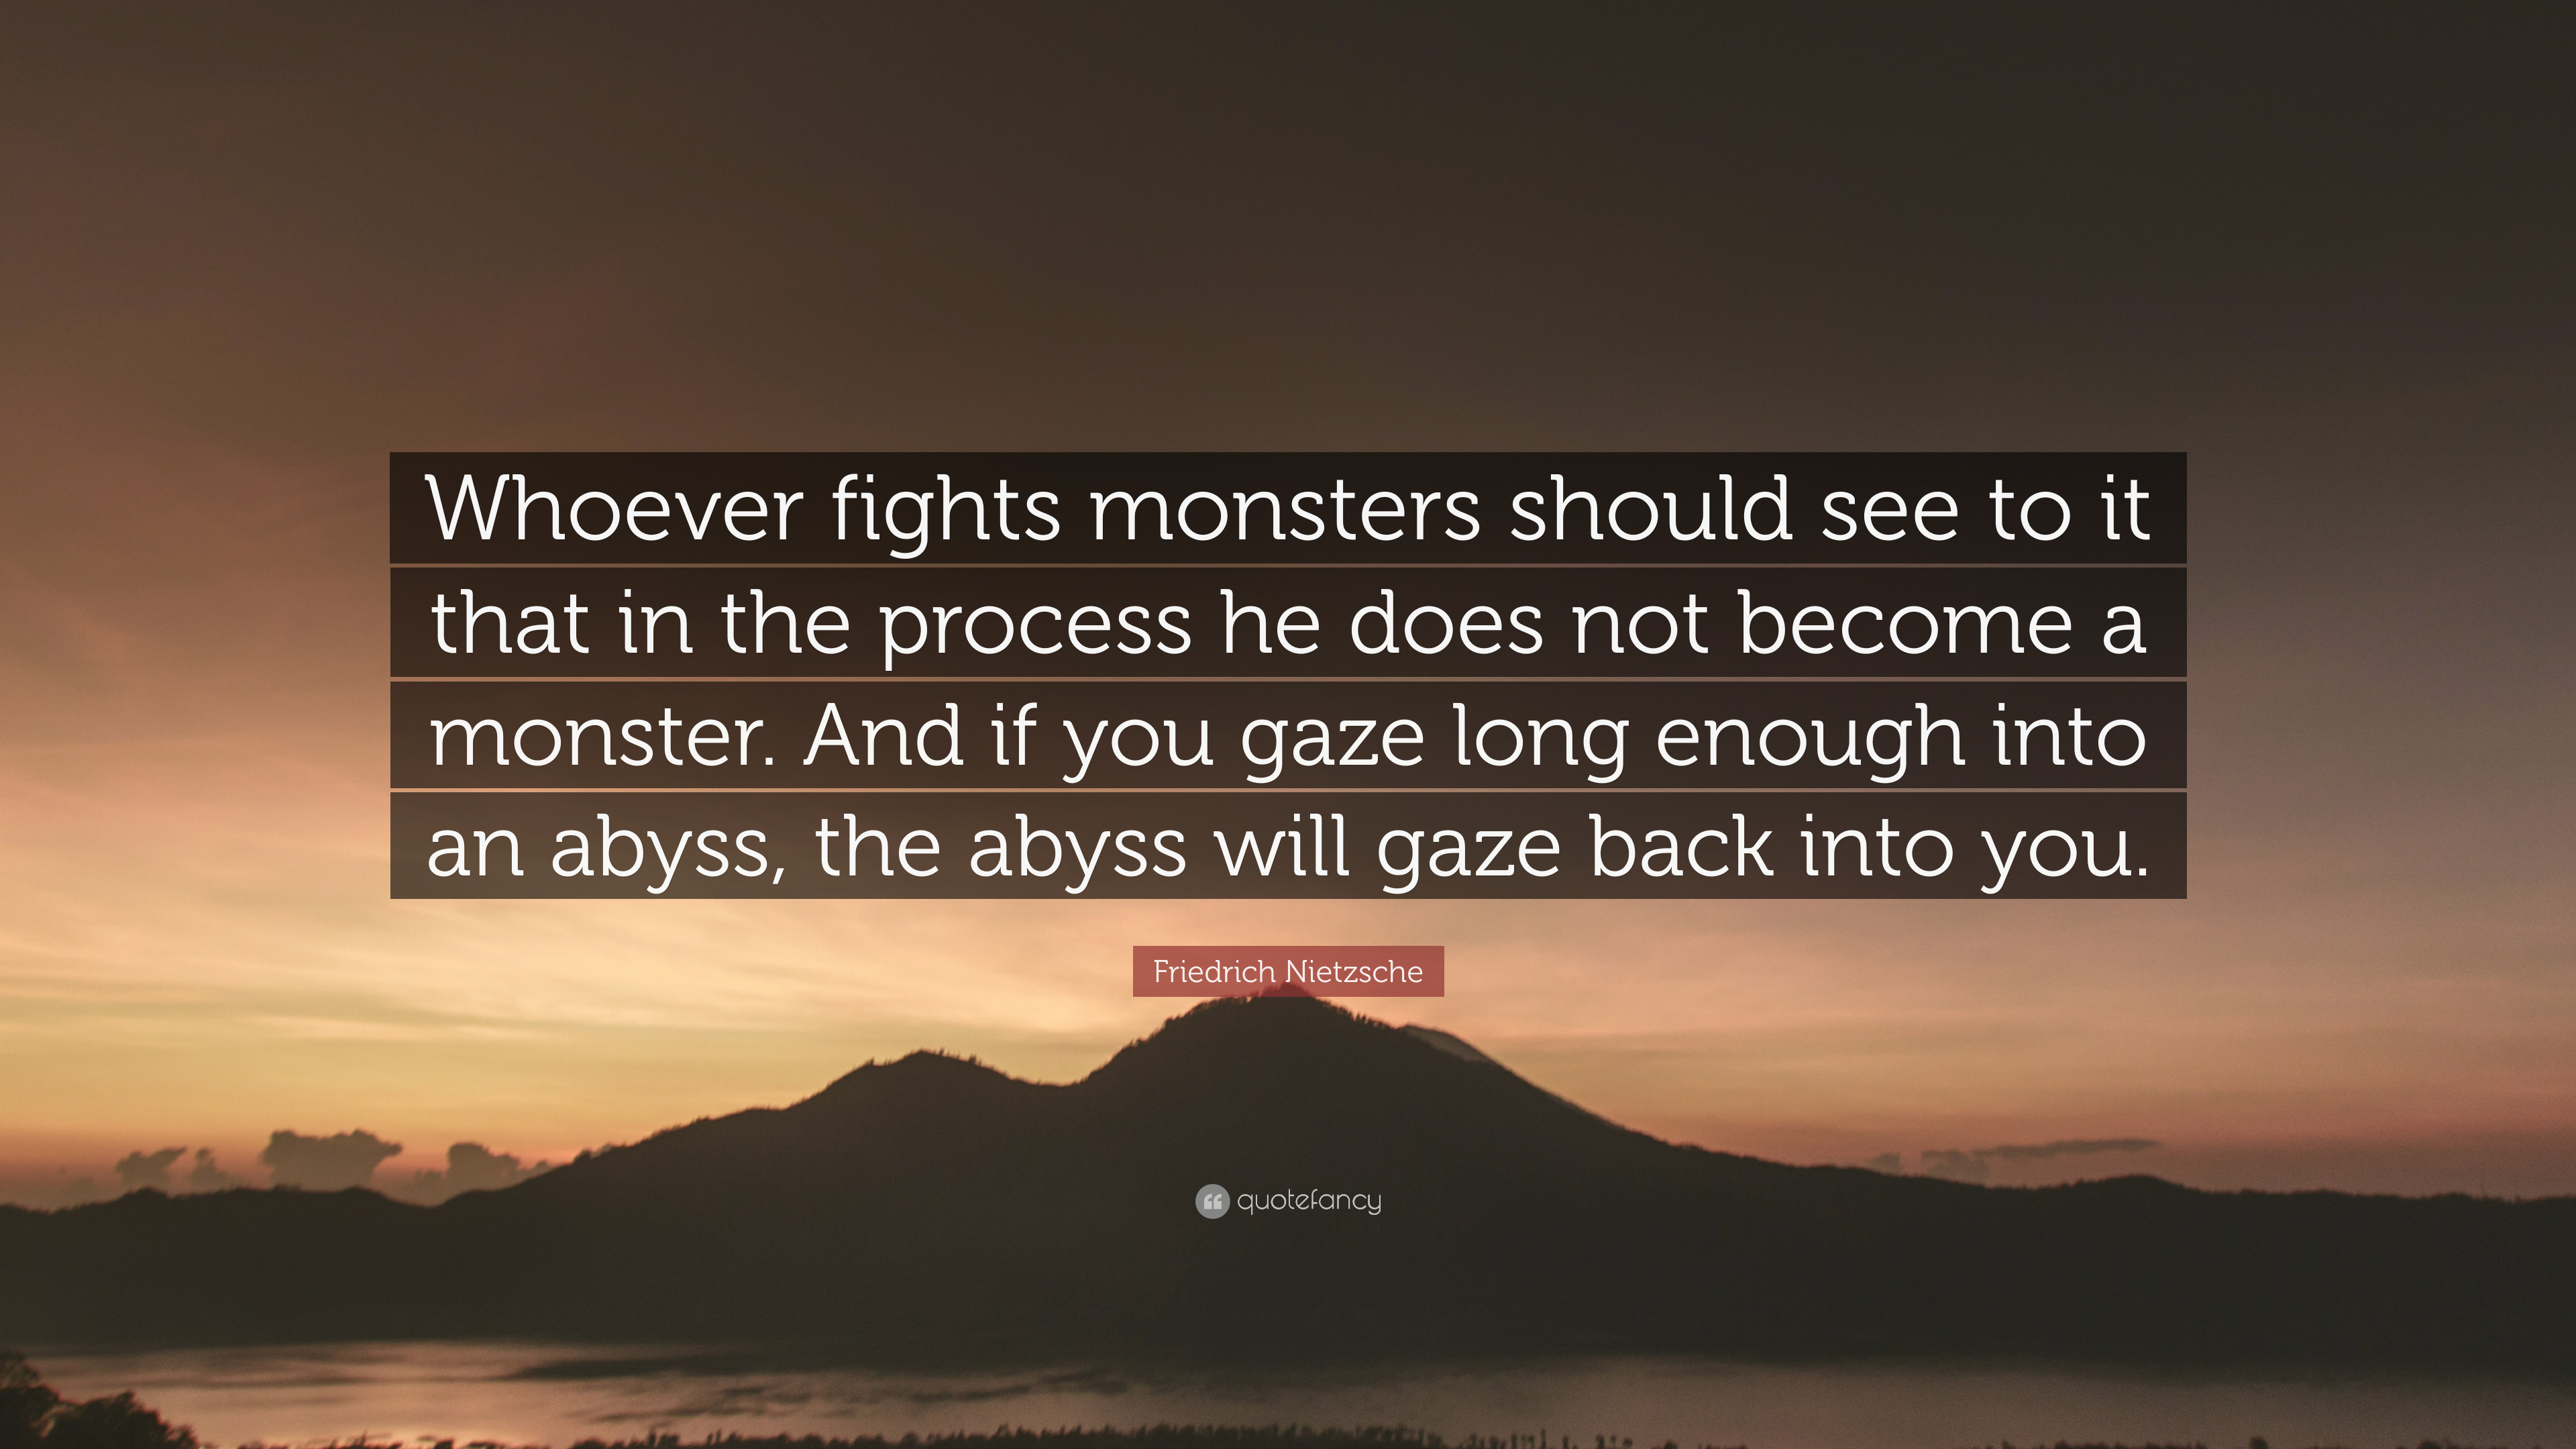 Friedrich Nietzsche Quote Whoever Fights Monsters Should See To It That In The Process He Does Not Become A Monster And If You Gaze Long Enough I 18 Wallpapers Quotefancy